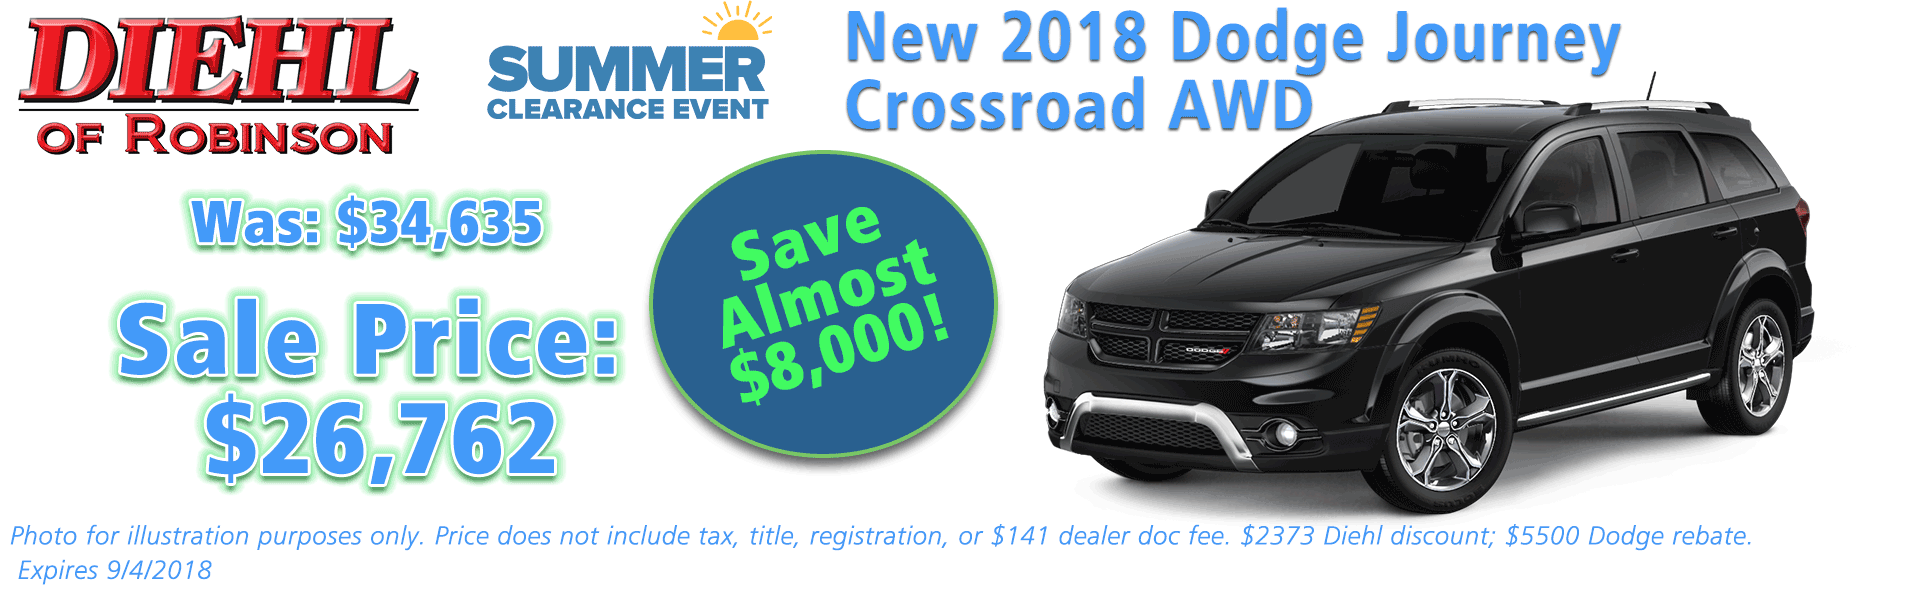 Diehl of Robinson, Robinson Twp, PA Chrysler Dodge Jeep Ram New and Used Sales, service, parts accessories NEW 2018 DODGE JOURNEY CROSSROAD AWD